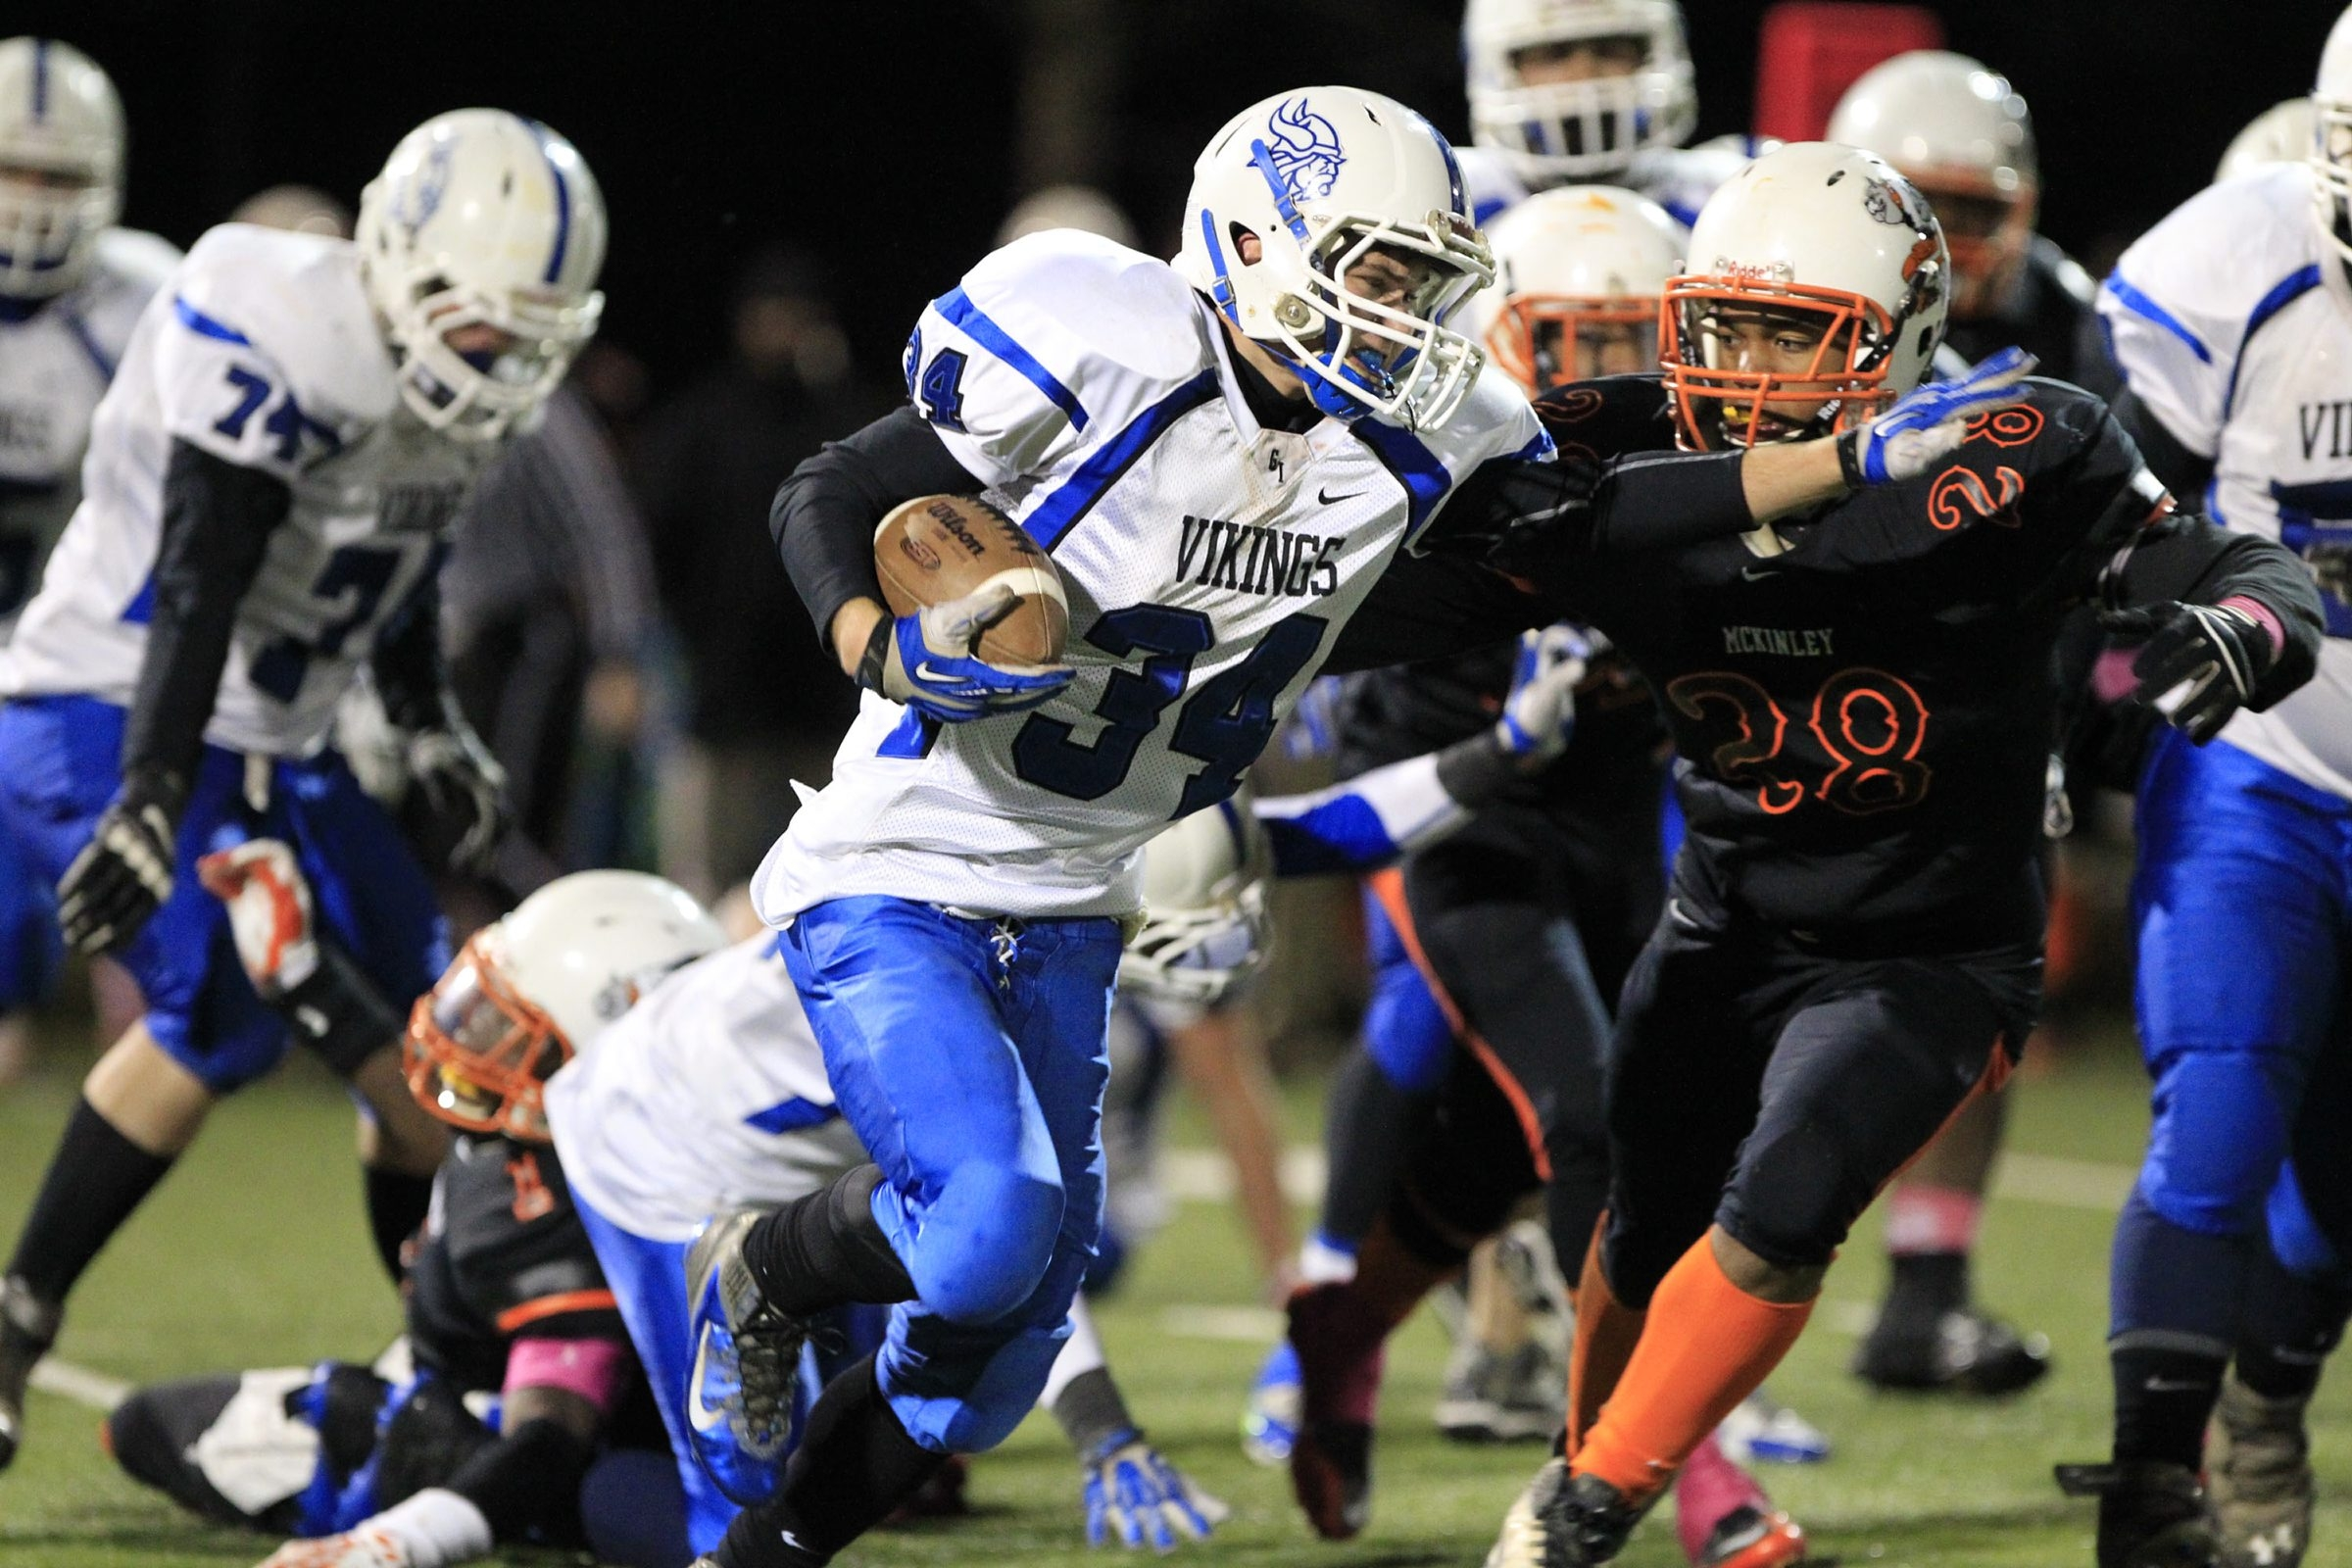 Grand Island running back Jarod Brandon looks for running room against McKinley's Quajon Taylor during a Class A Section VI playoff at Riverside high school. More coverage on Pages B6-7.